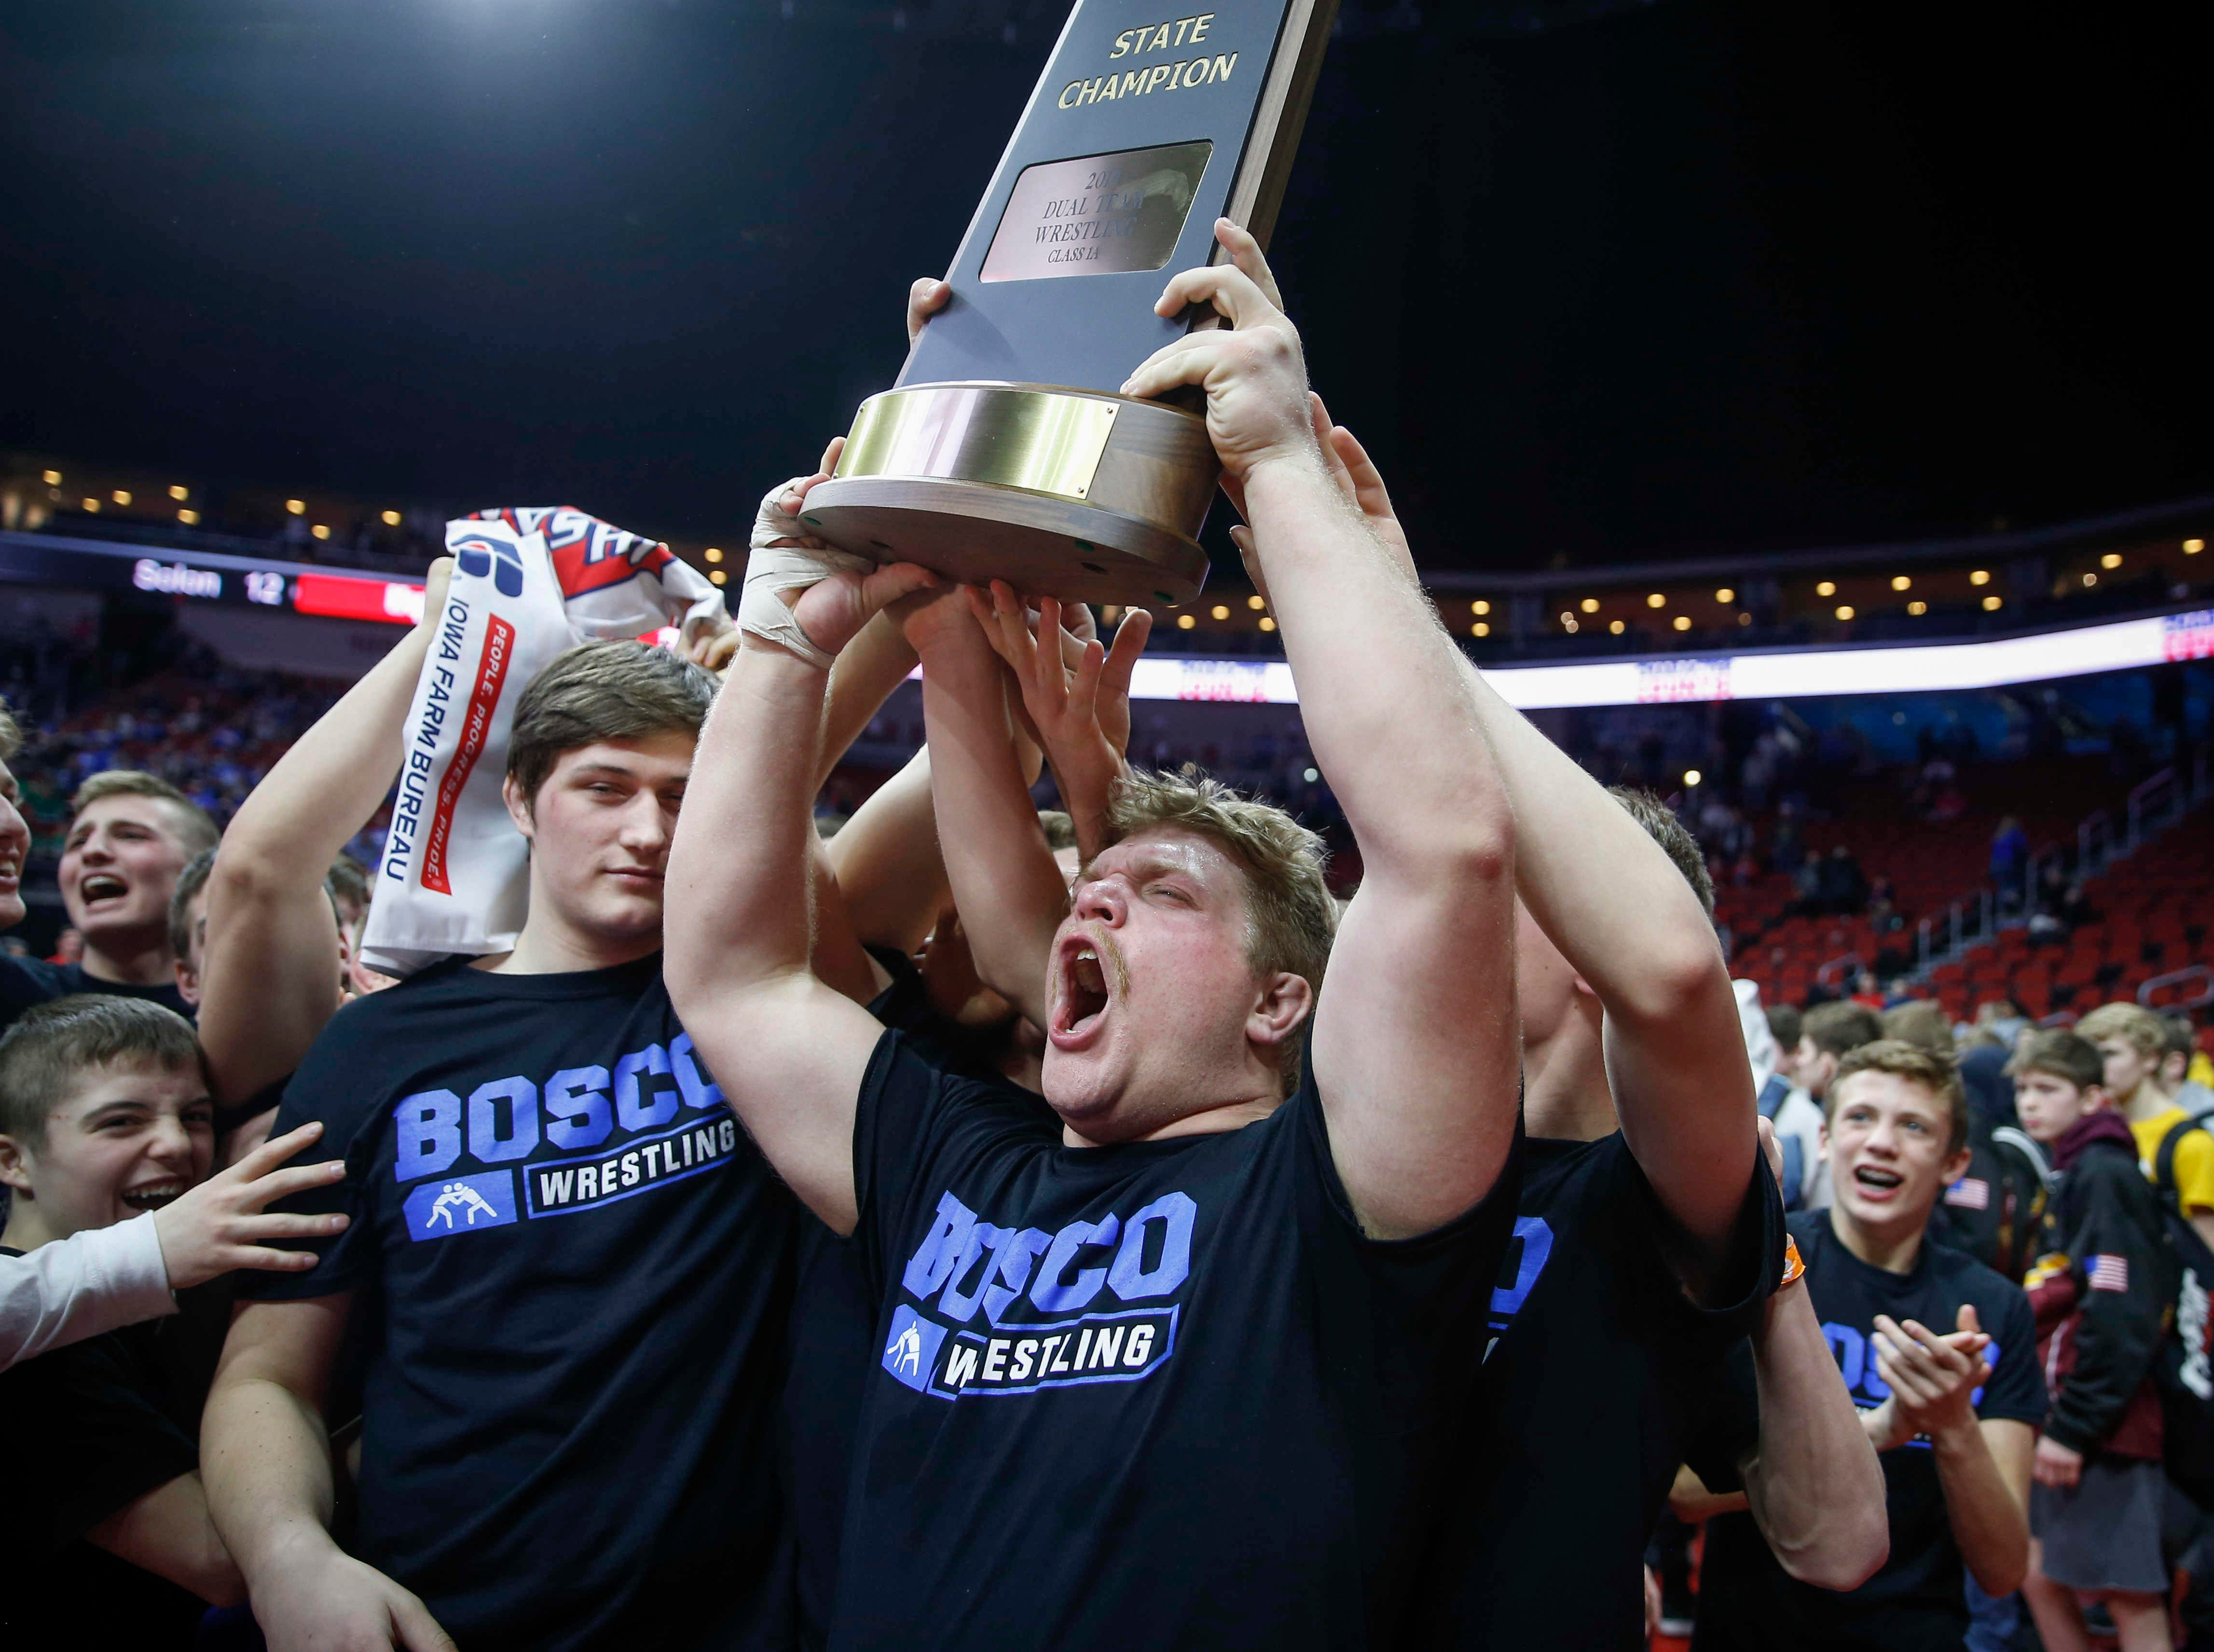 Members of the Don Bosco wrestling team raise the Class 1A state championship trophy during the 2019 Iowa high school dual wrestling state tournament on Wednesday, Feb. 13, 2019, at Wells Fargo Arena in Des Moines.